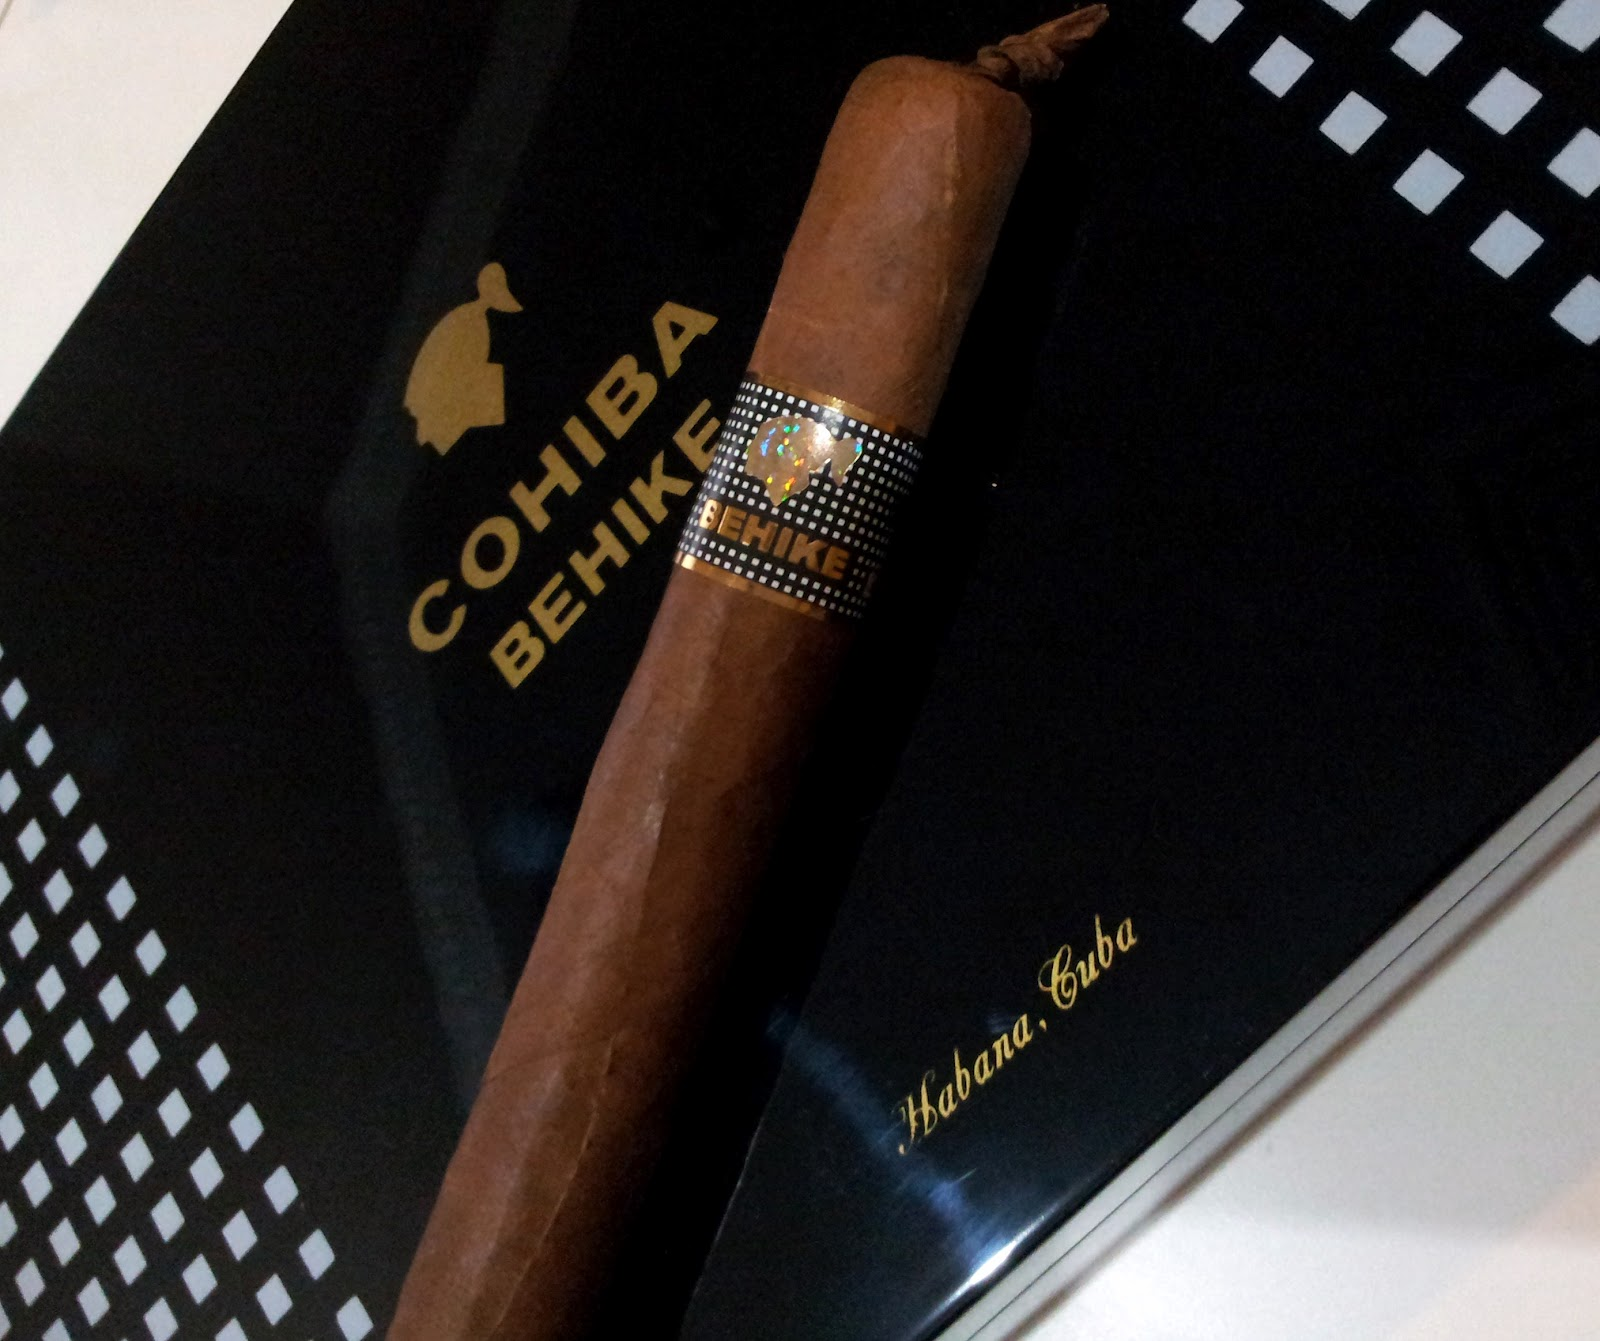 Me and My Cigars: My Fake (counterfeit) COHIBA BEHIKE 56